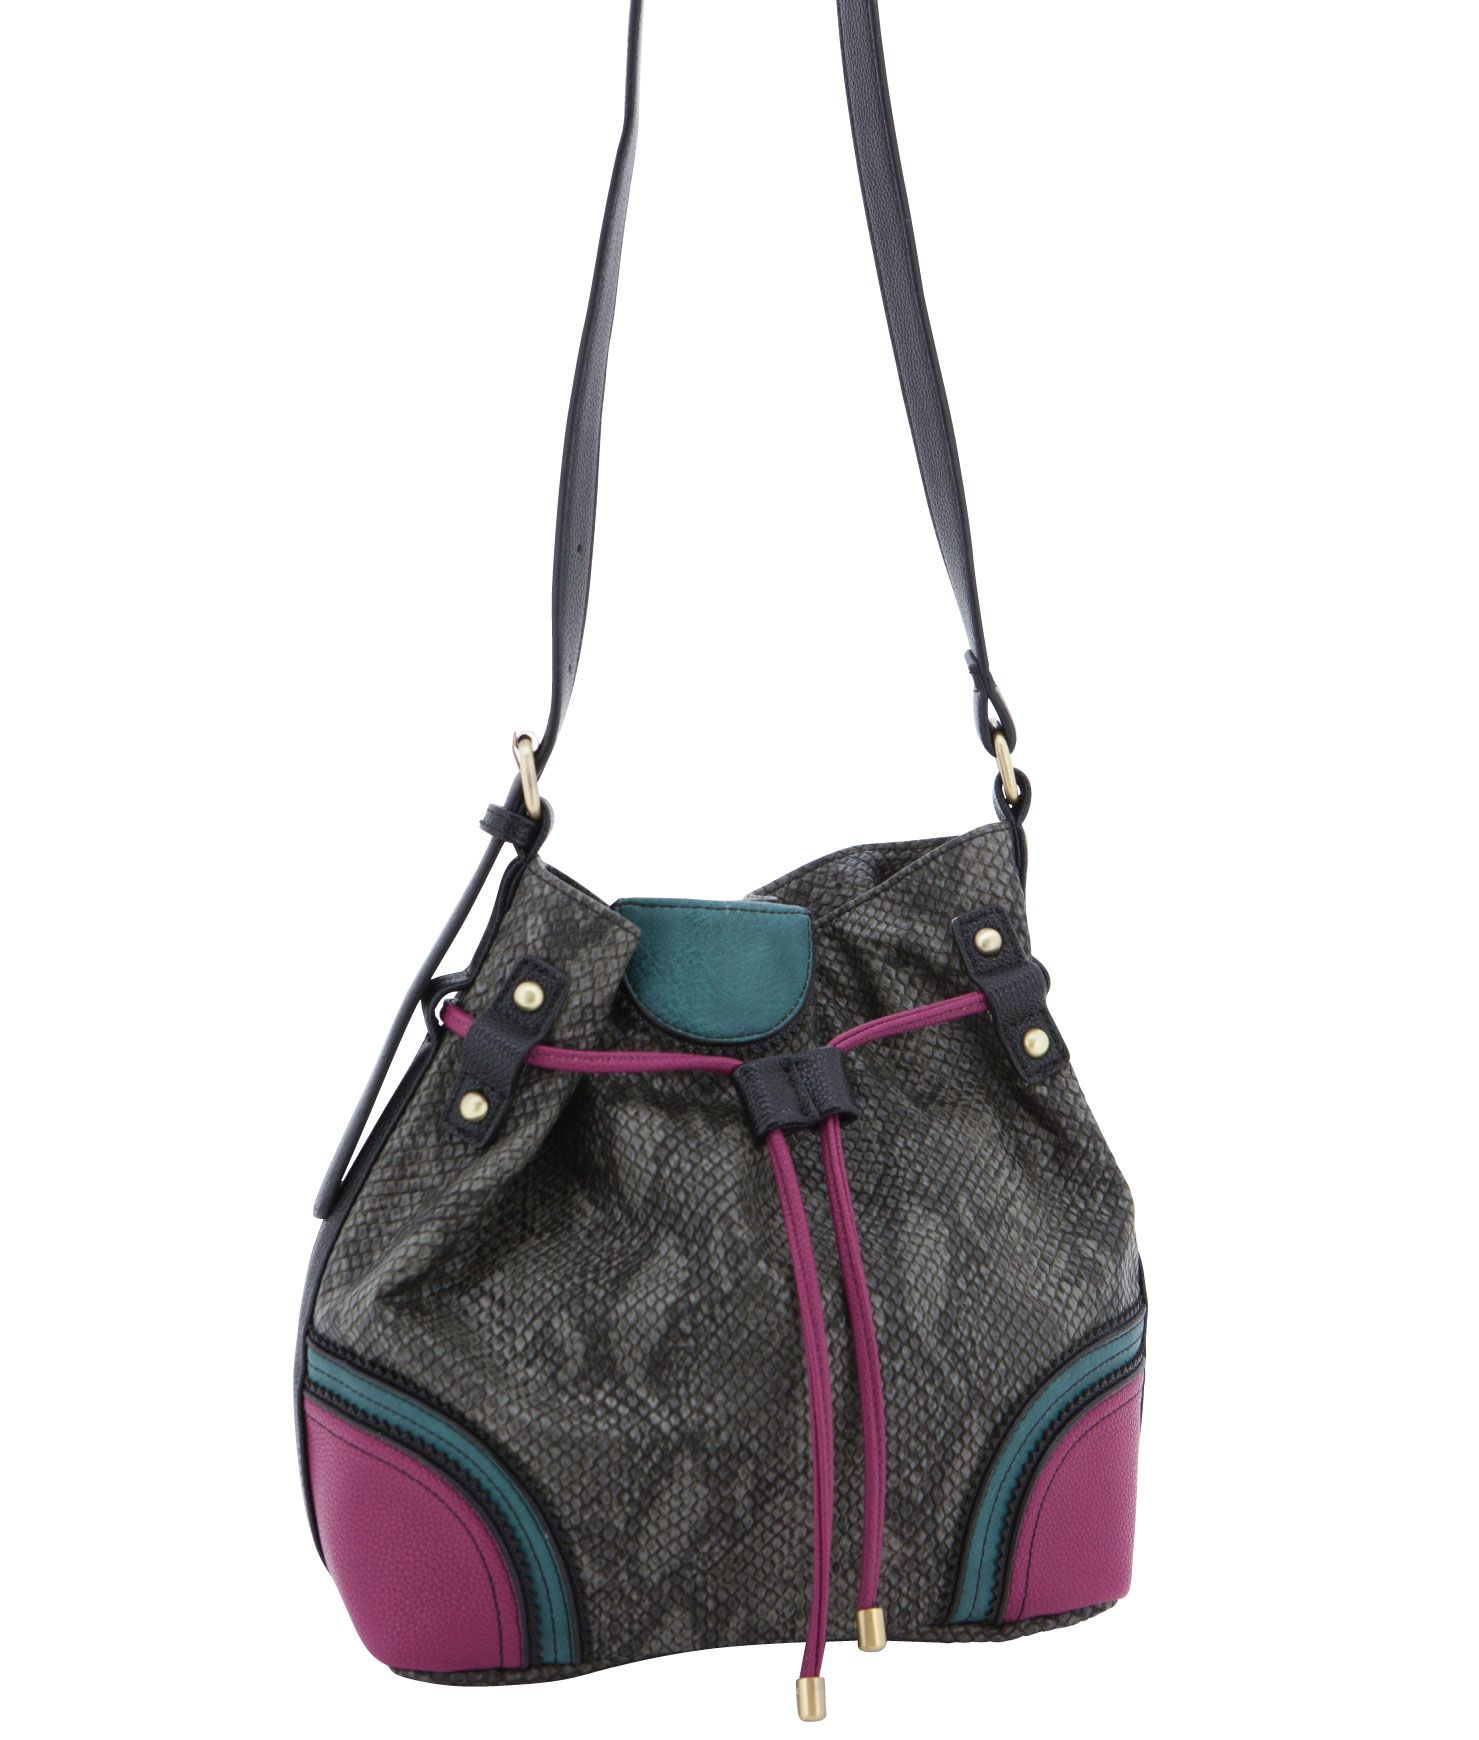 Spencer and Rutherford - Handbags - Hobo Bag - Bronte - Fresco